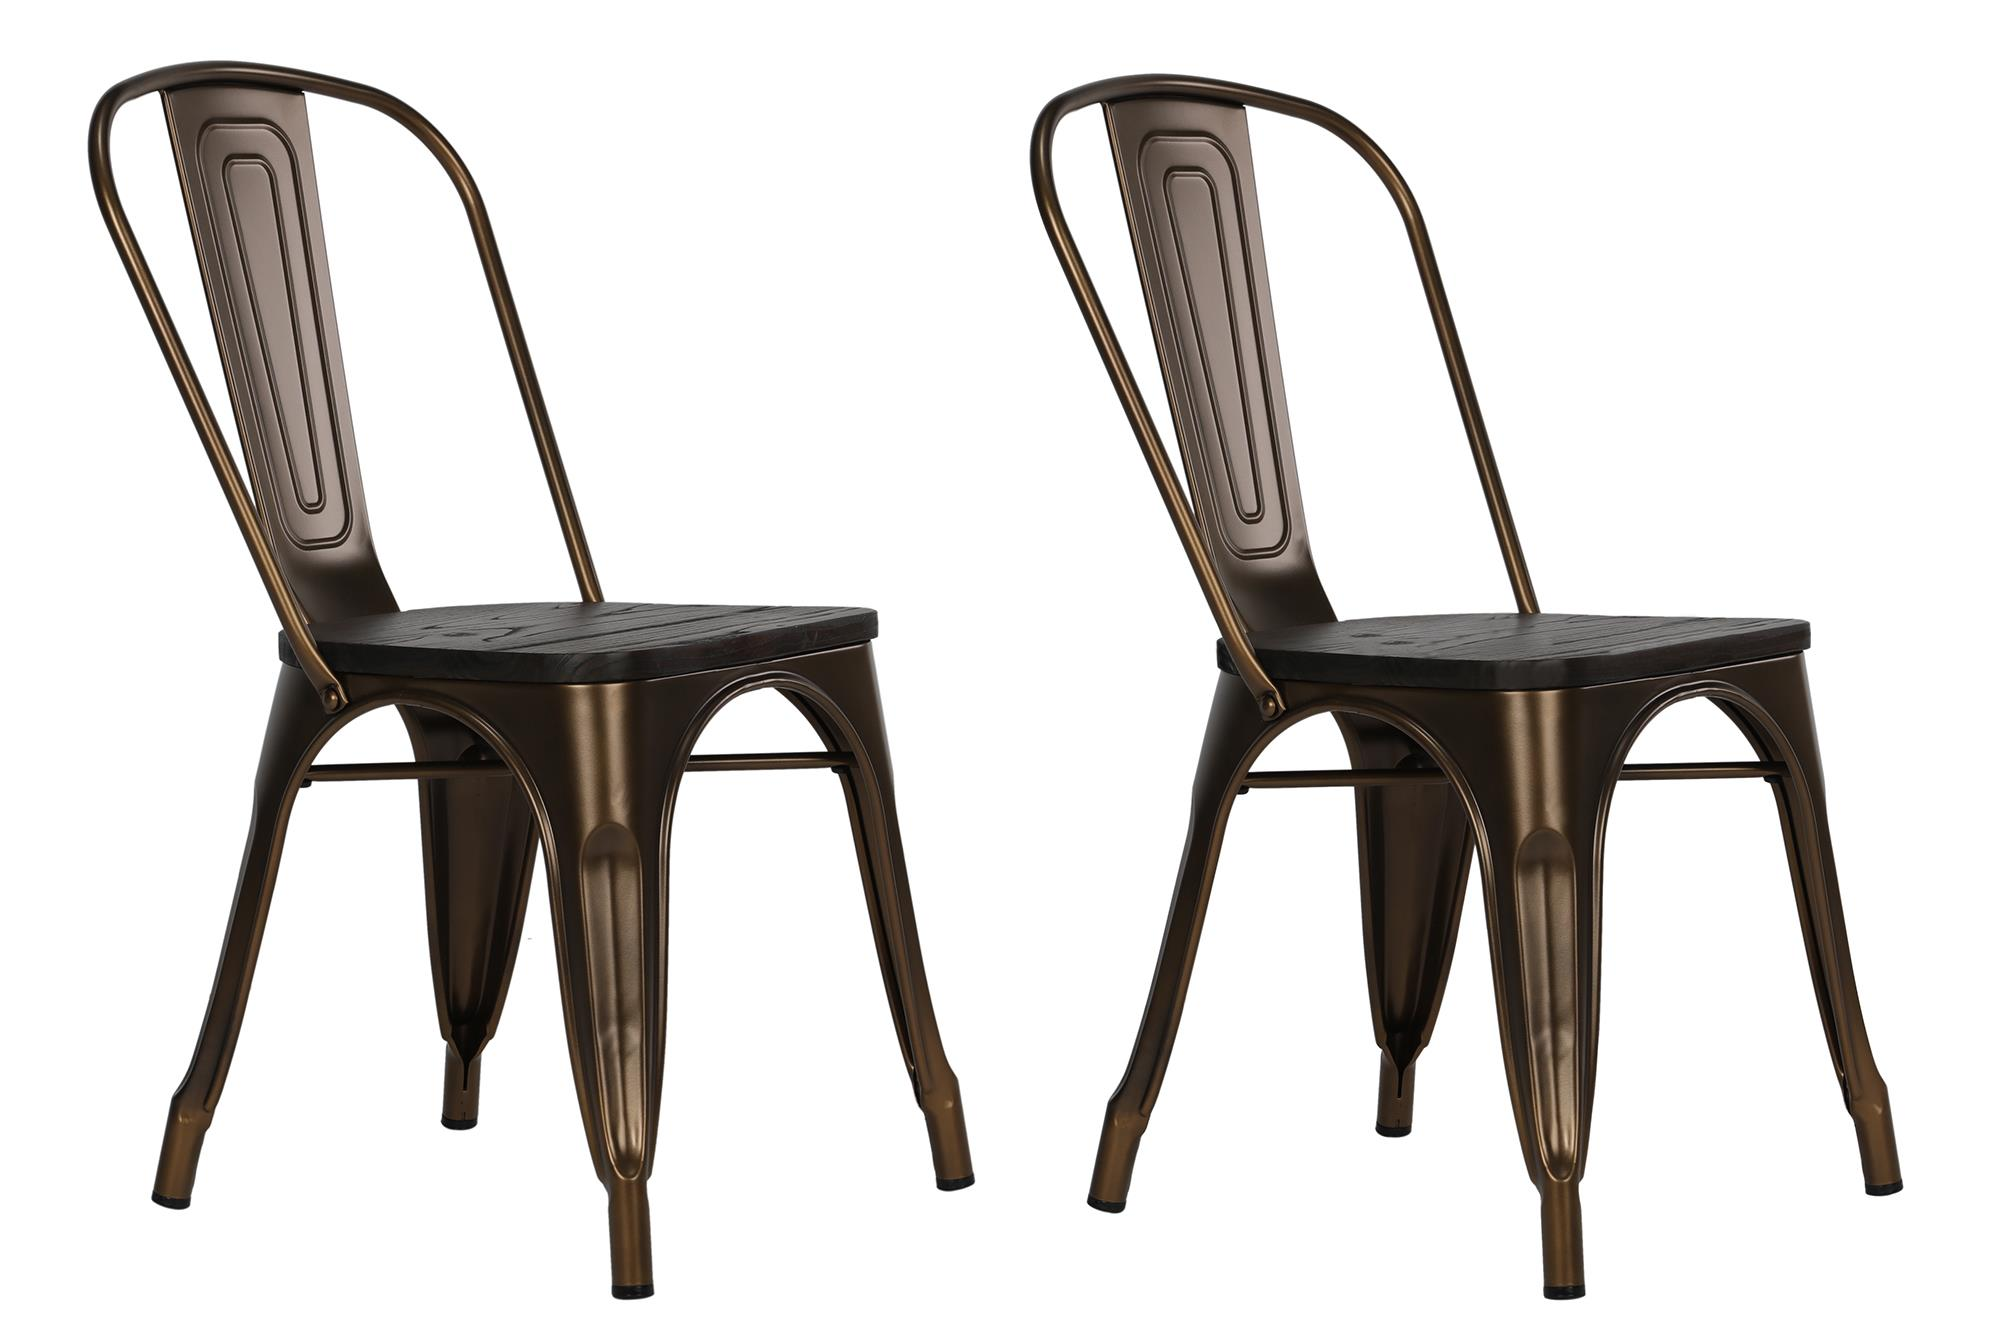 Wood And Metal Dining Chairs Dorel Fusion Antique Bronze Metal Dining Chair With Wood